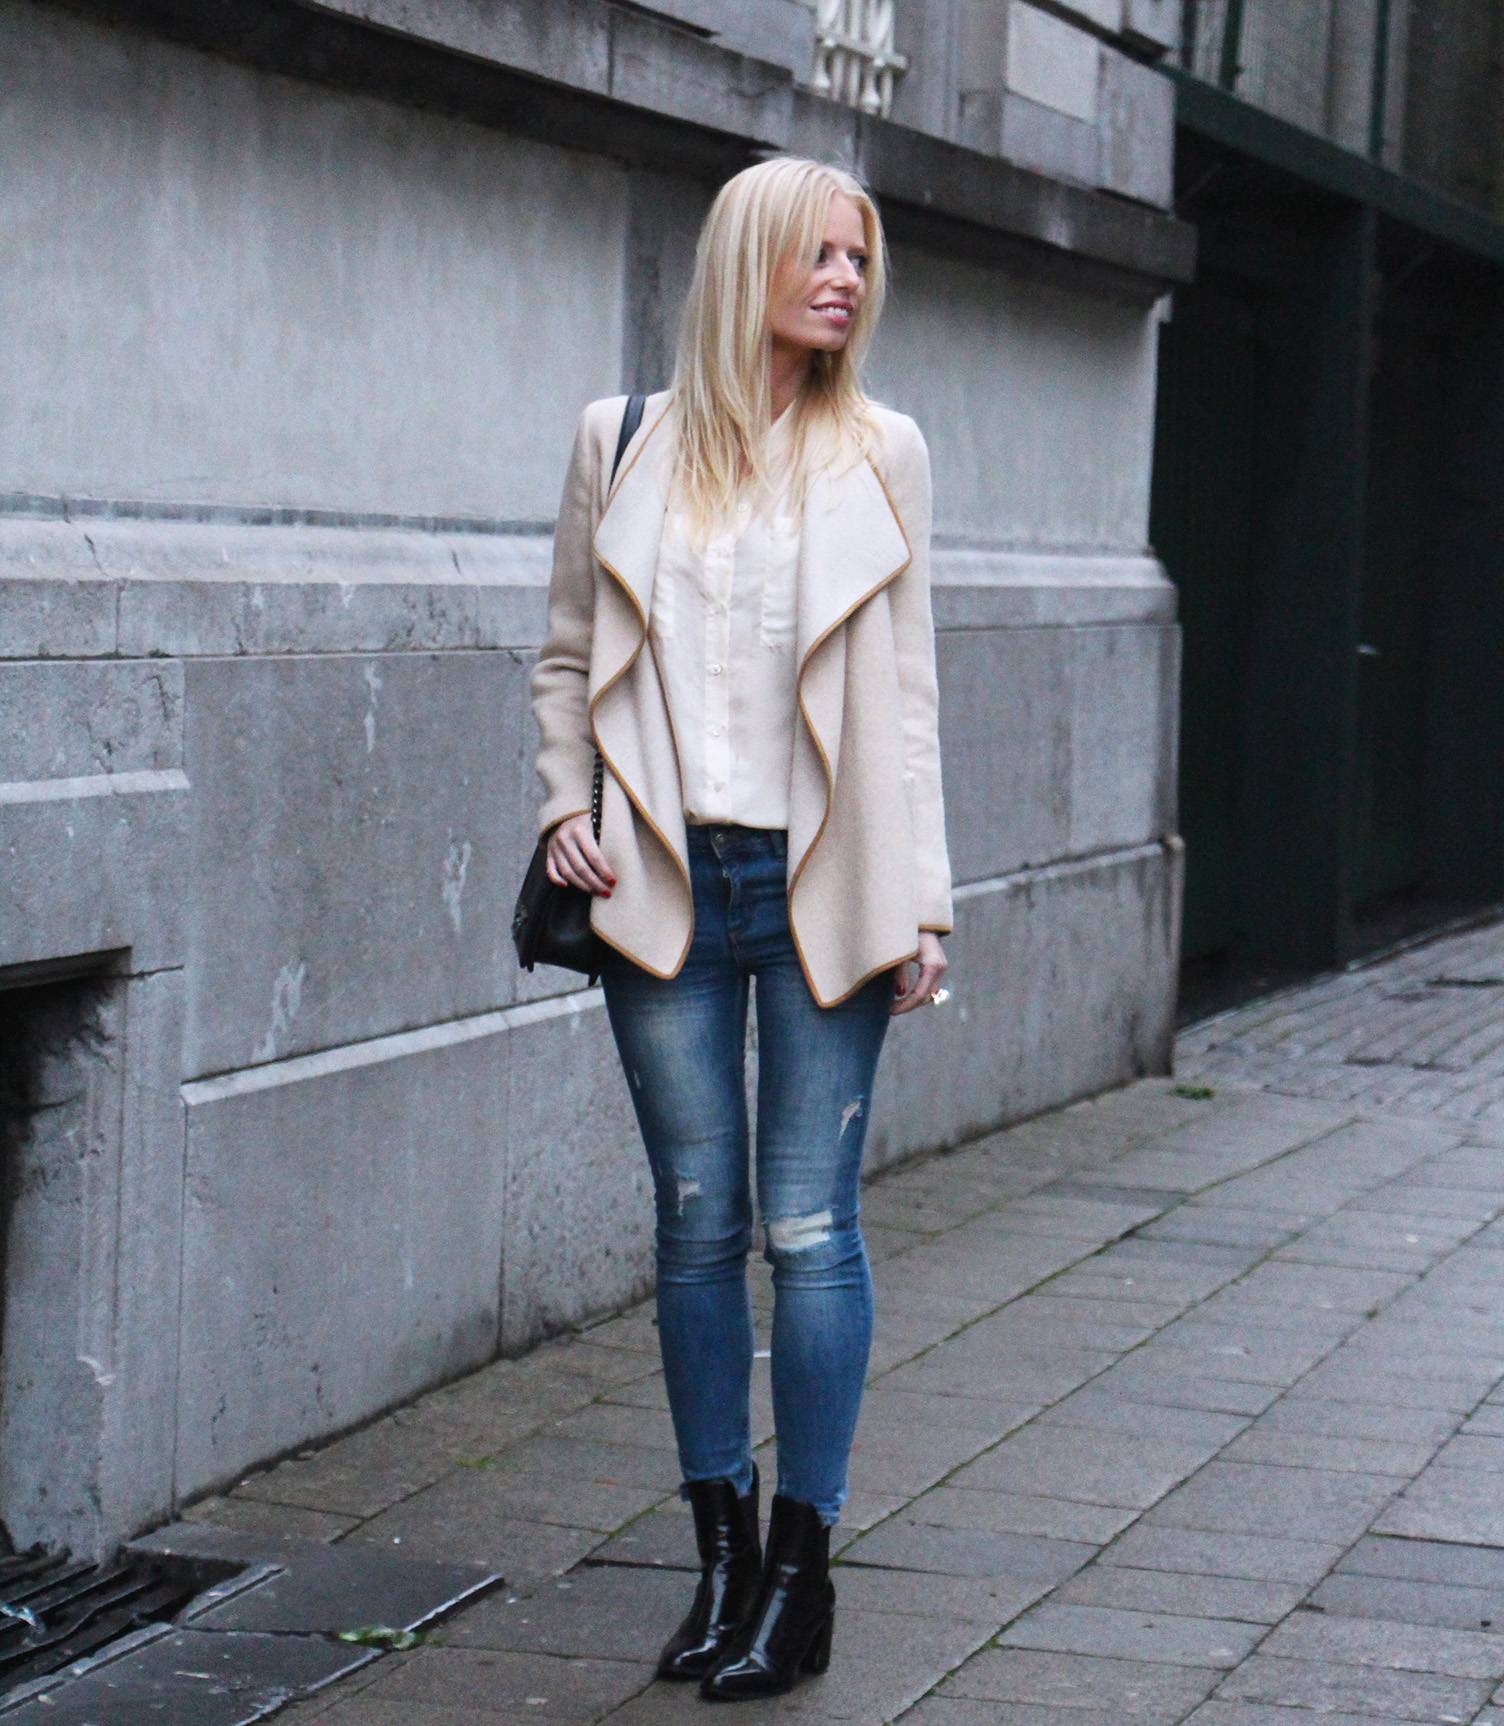 outfit26aug